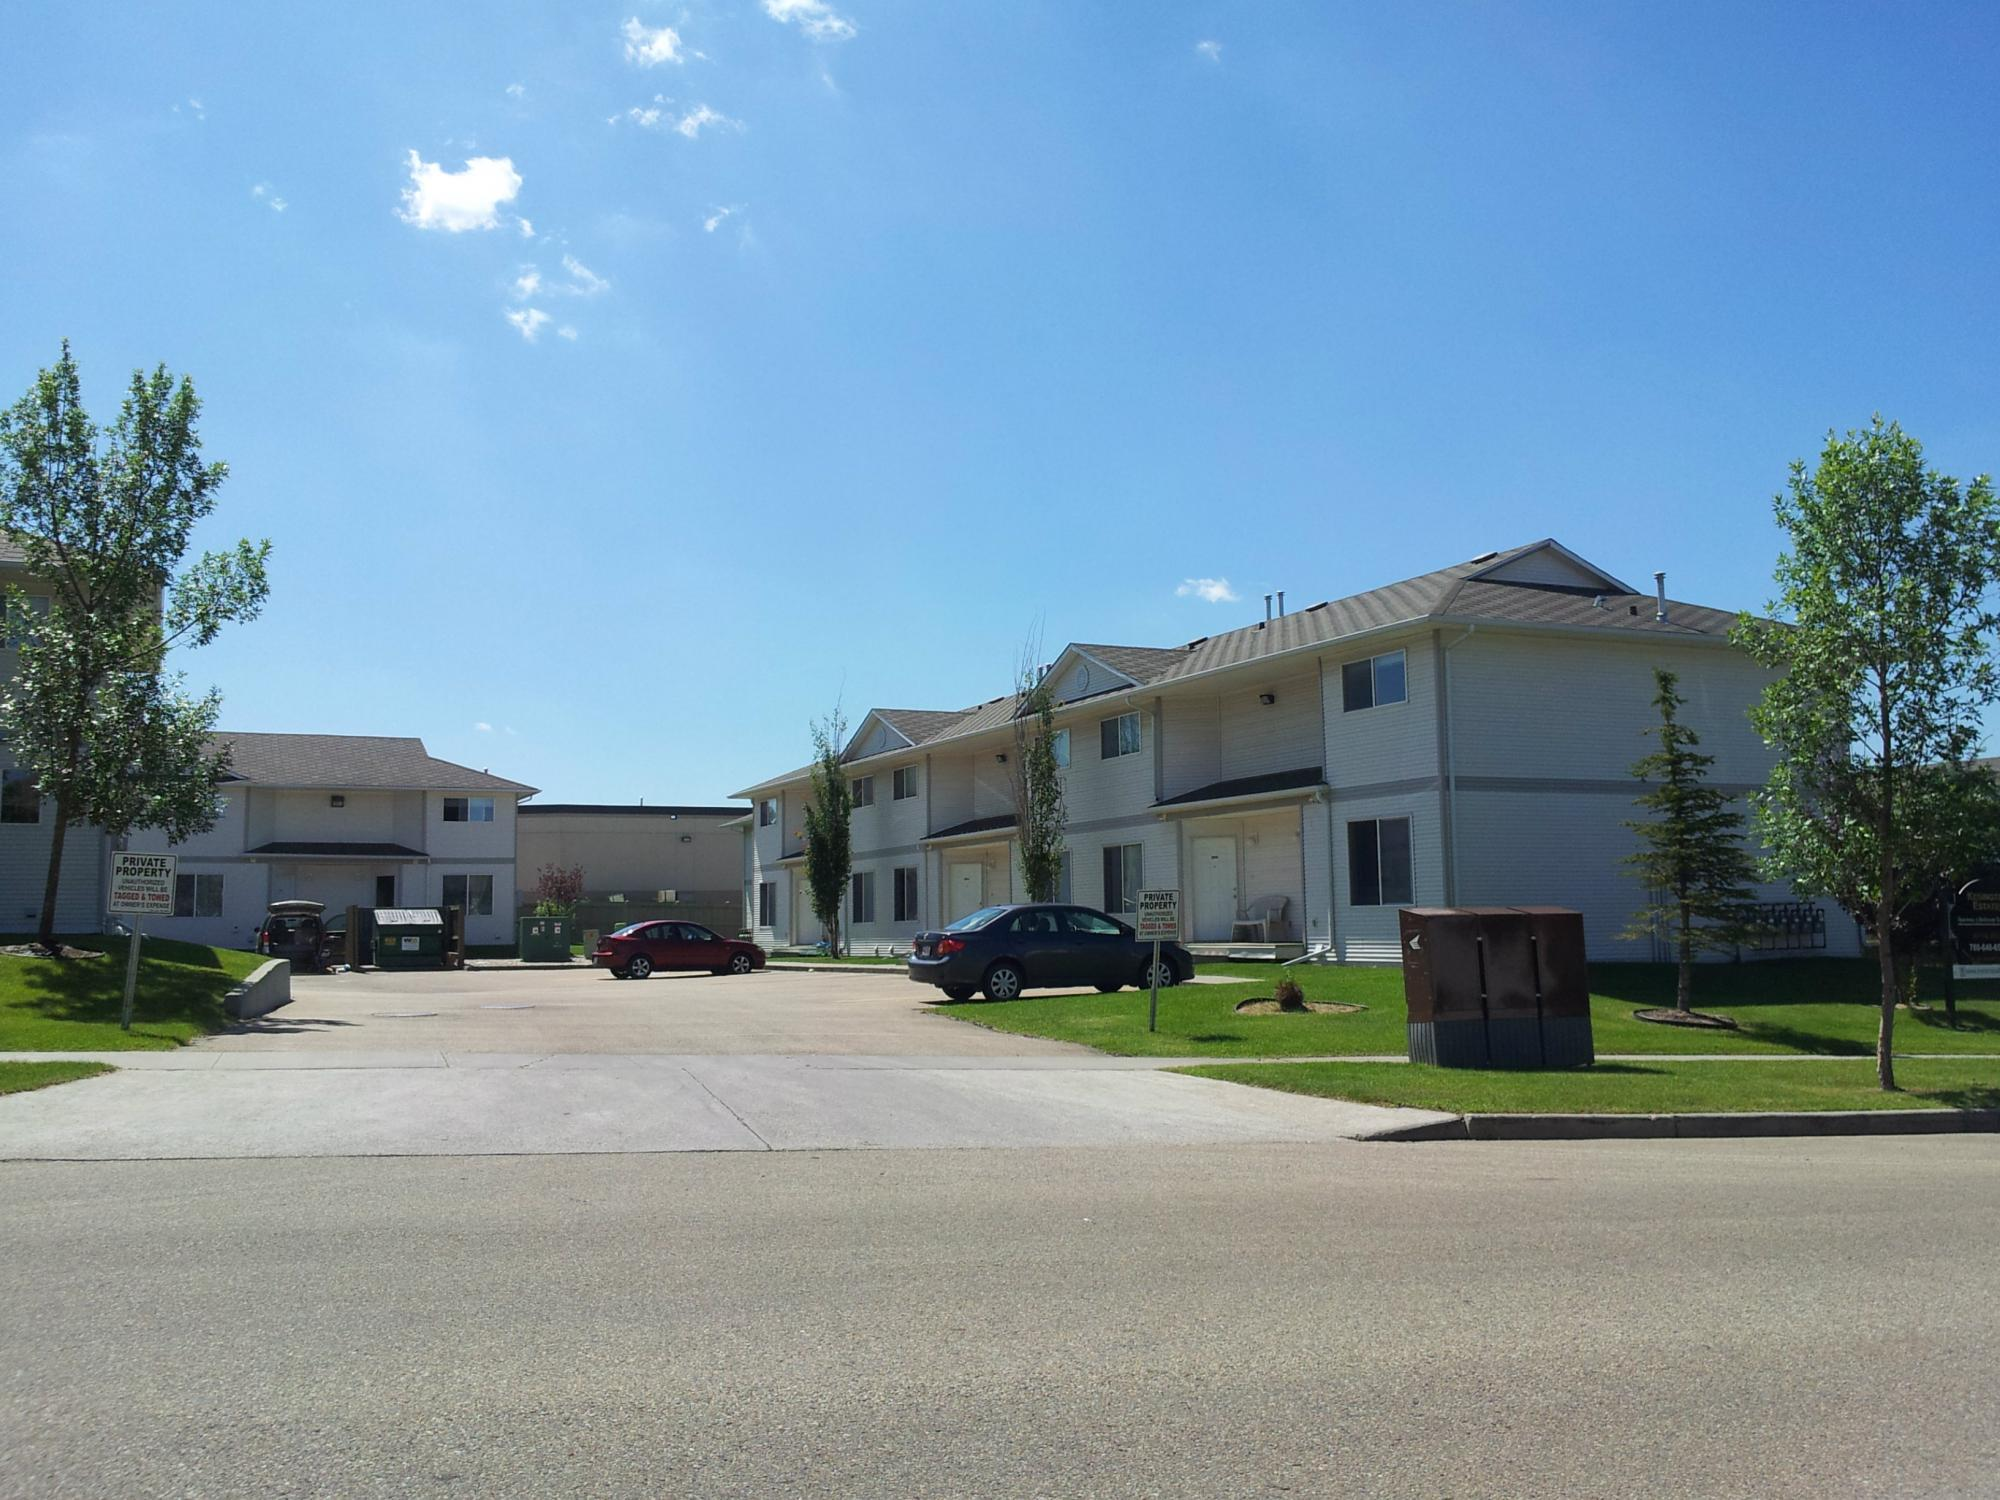 Kensington Estates,Sherwood Park, AB